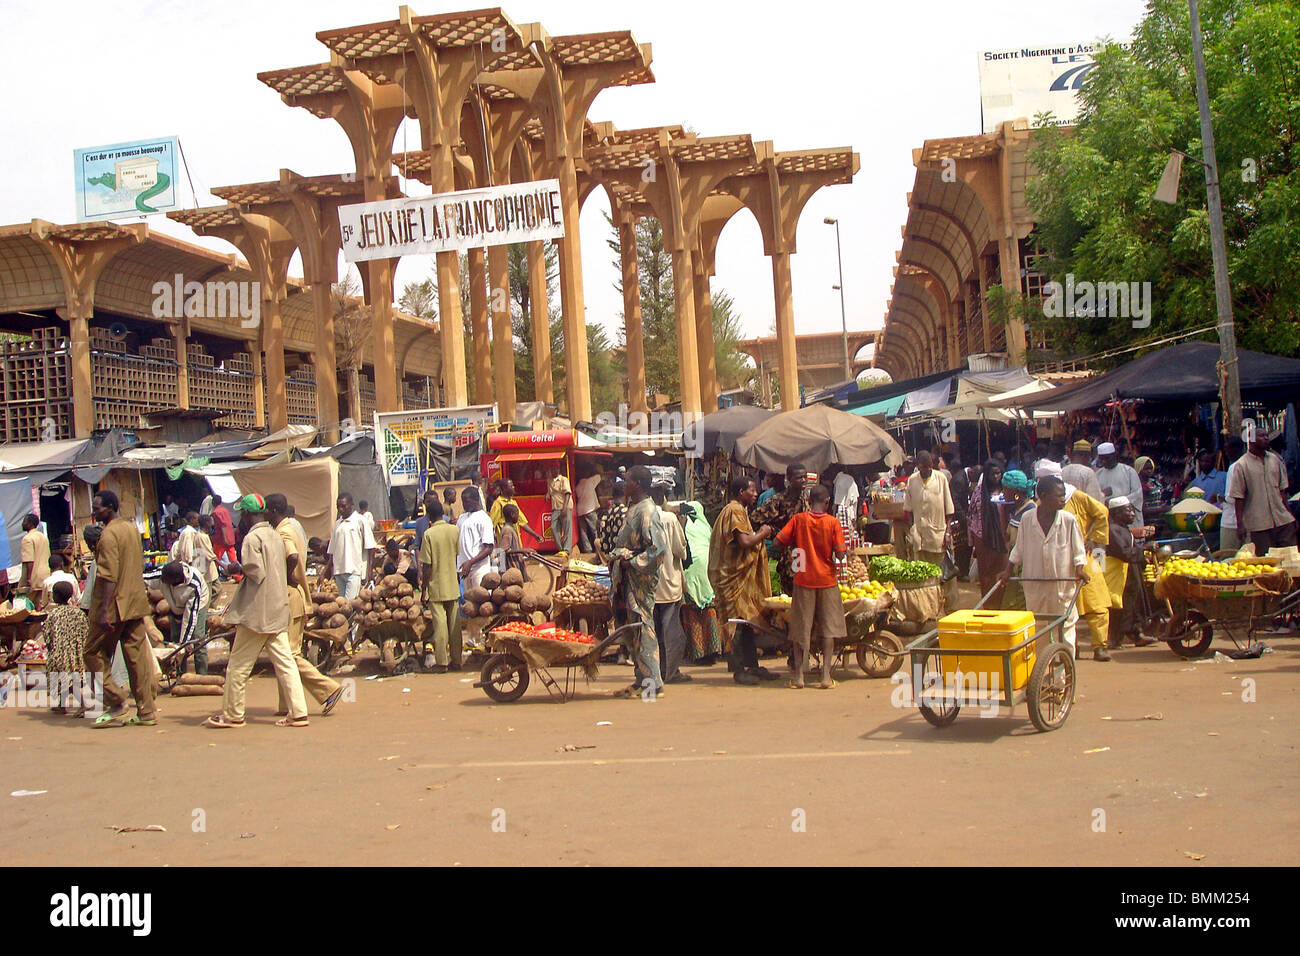 The capital of Niger is Niamey 56